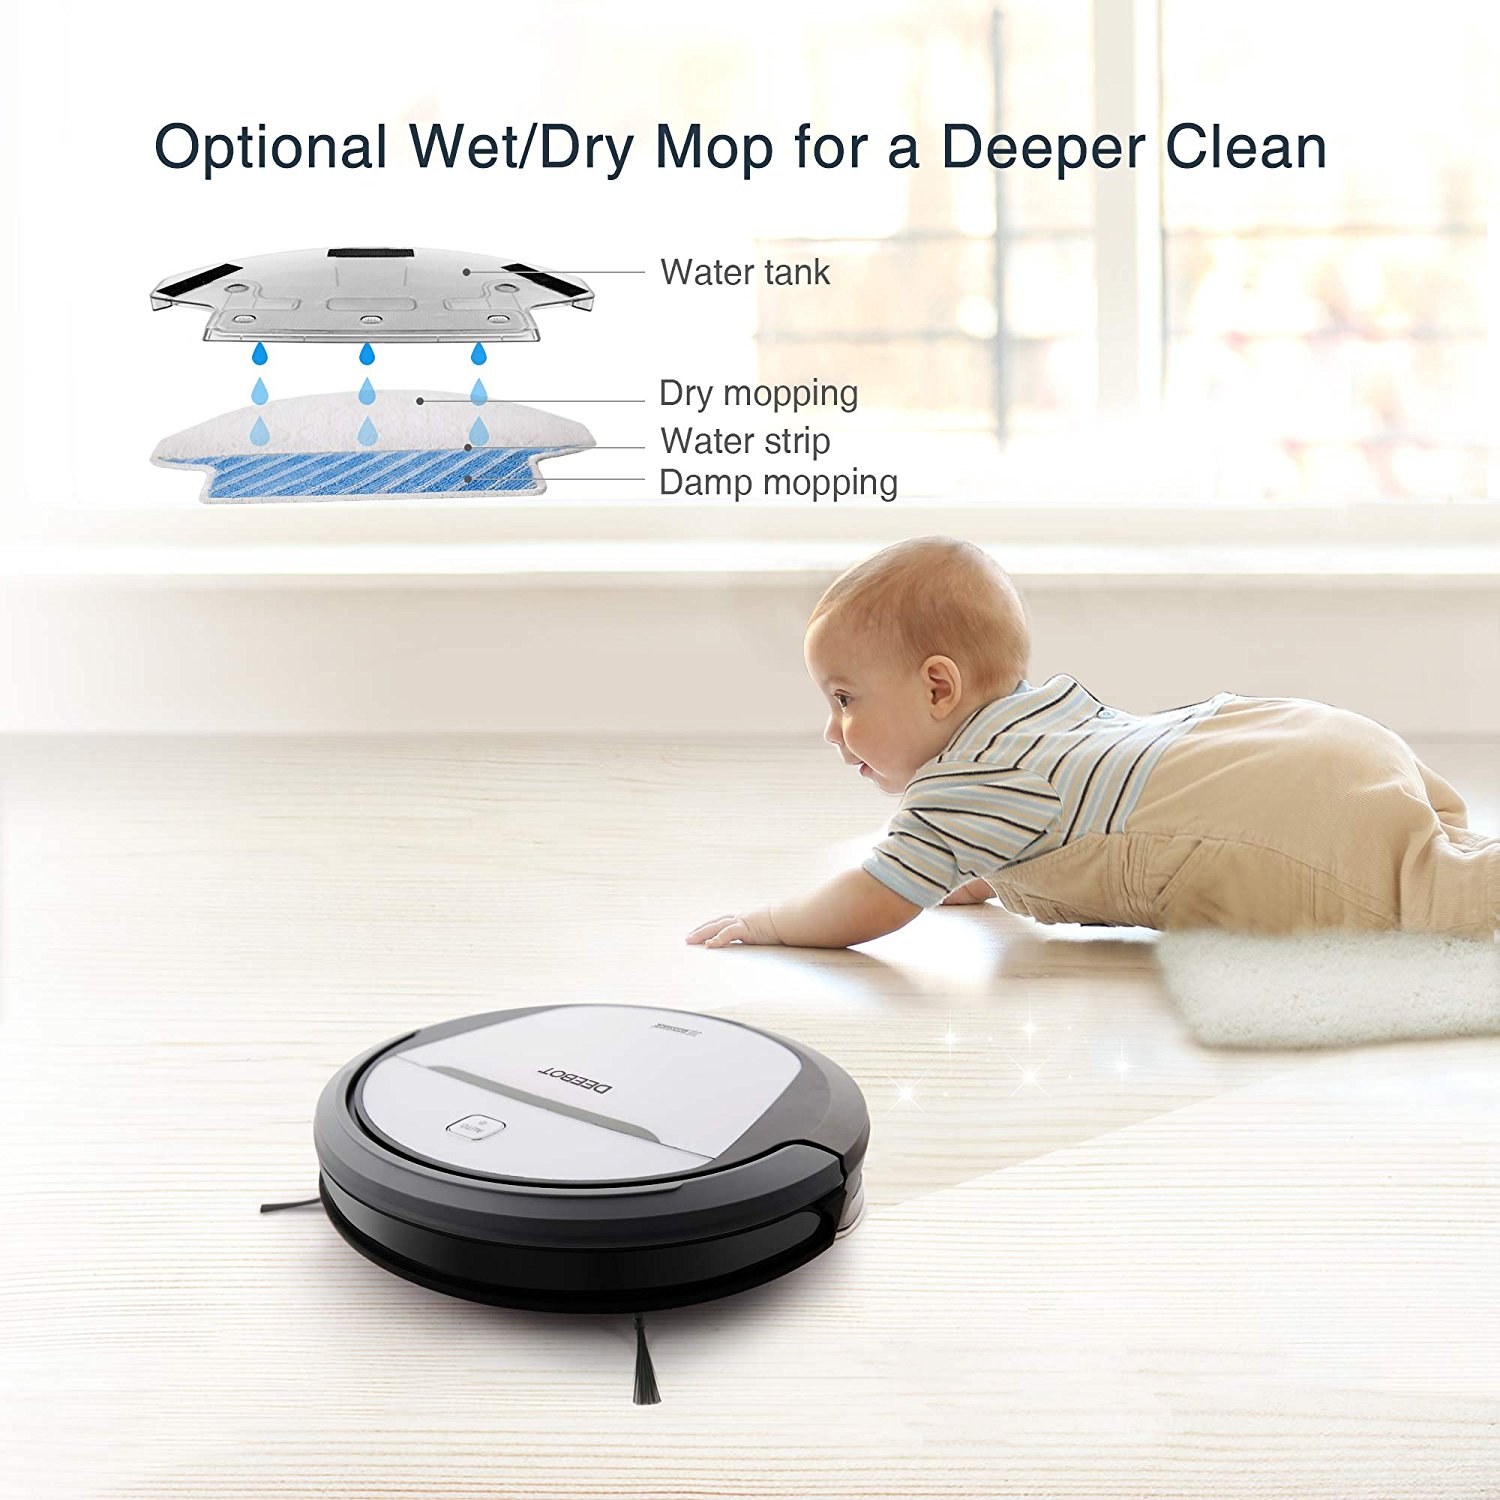 ECOVACS DeeBot M80, Mop Feature, Vacuum Fanatics, Reviews and Comparisons of Robotic Cleaners